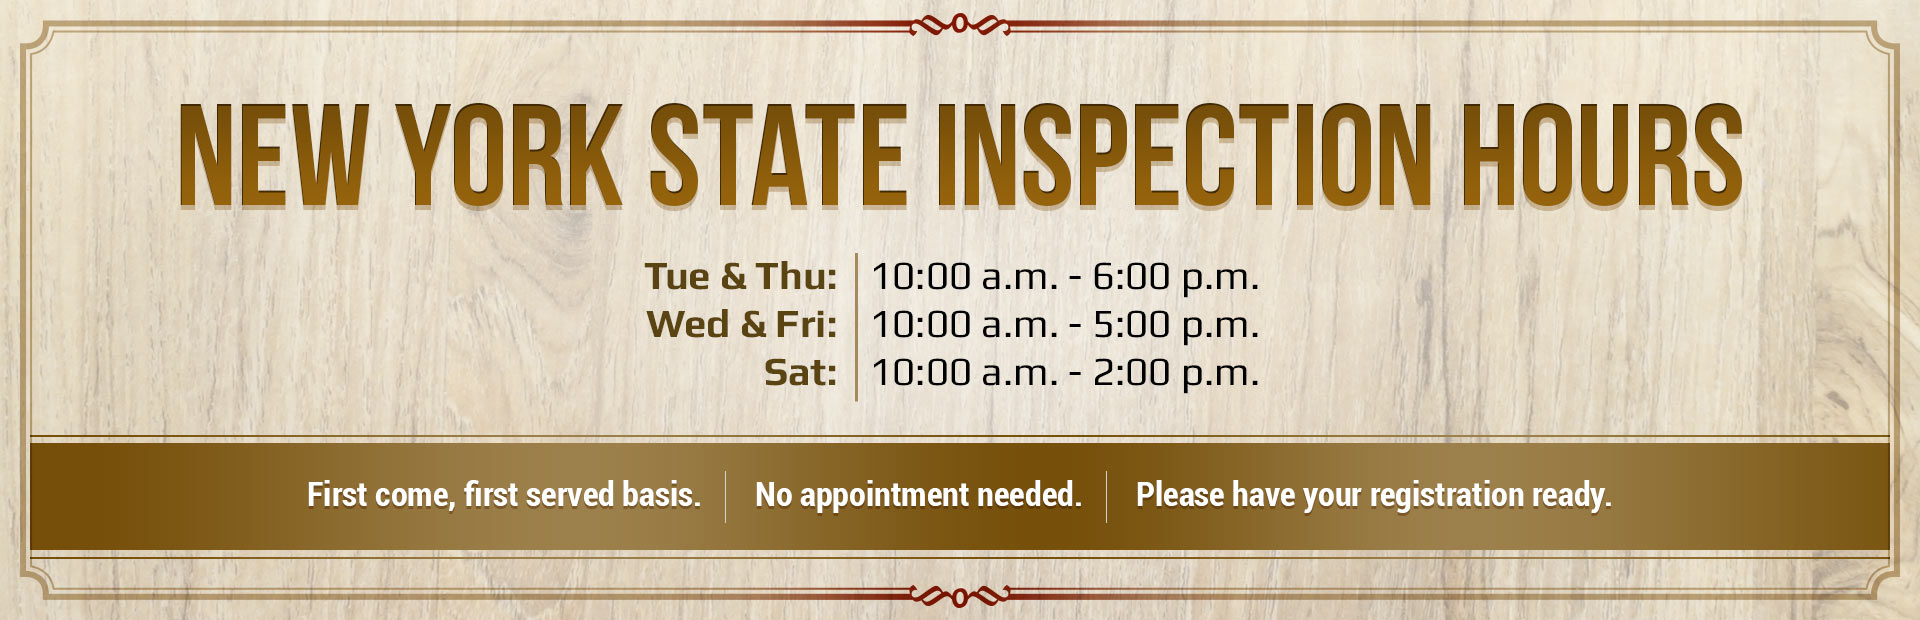 New York State Inspection Hours: Tue & Thu: 10:00 a.m. - 6:00 p.m. | Wed & Fri 10:00 a.m. - 5:00 p.m. | Sat: 10:00 a.m. - 2:00 p.m.